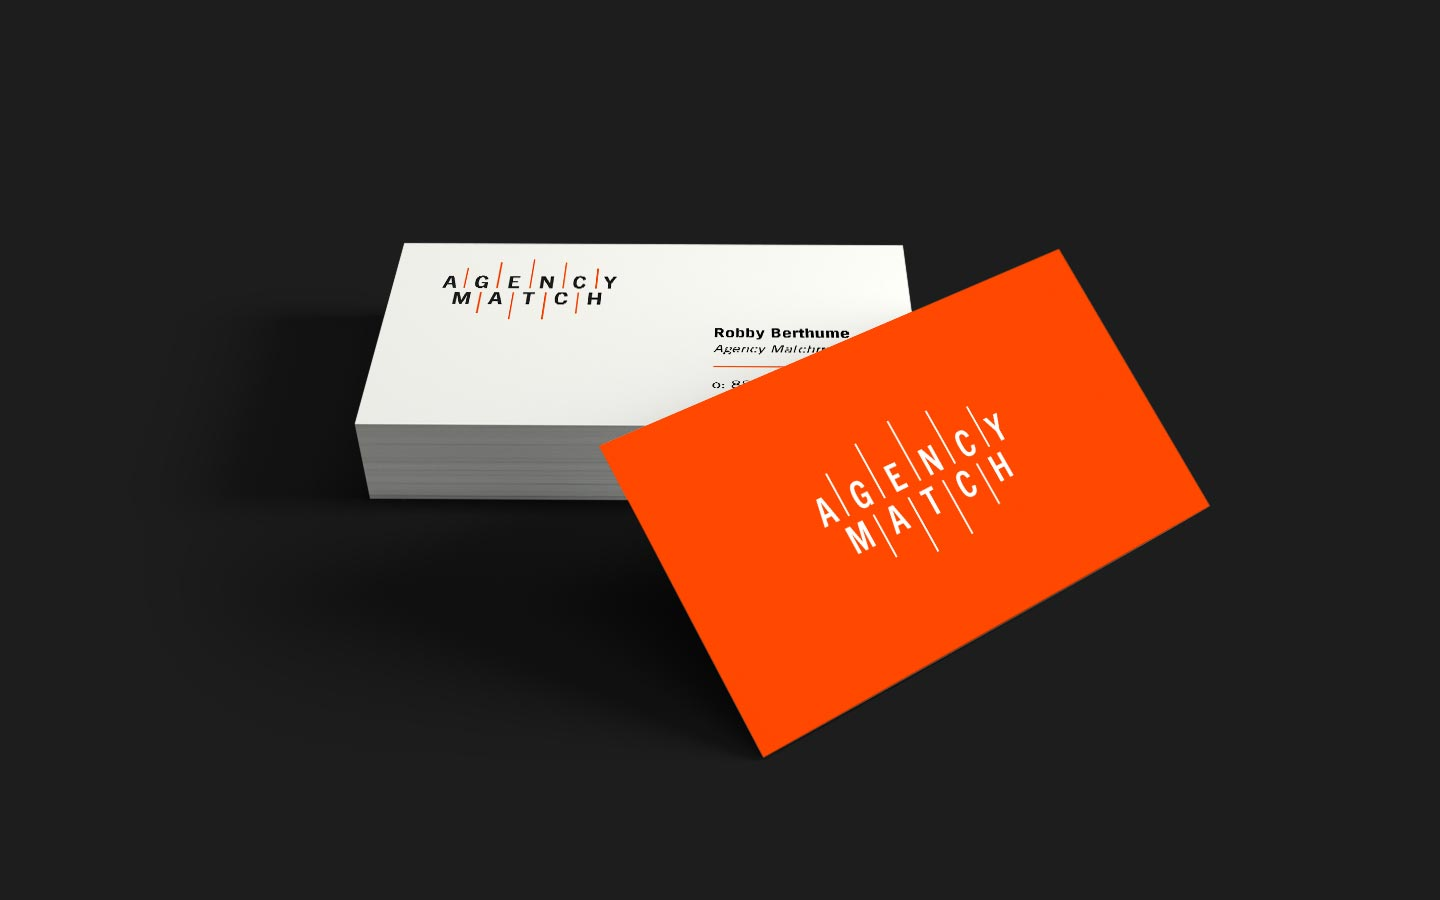 Agency match business cards2